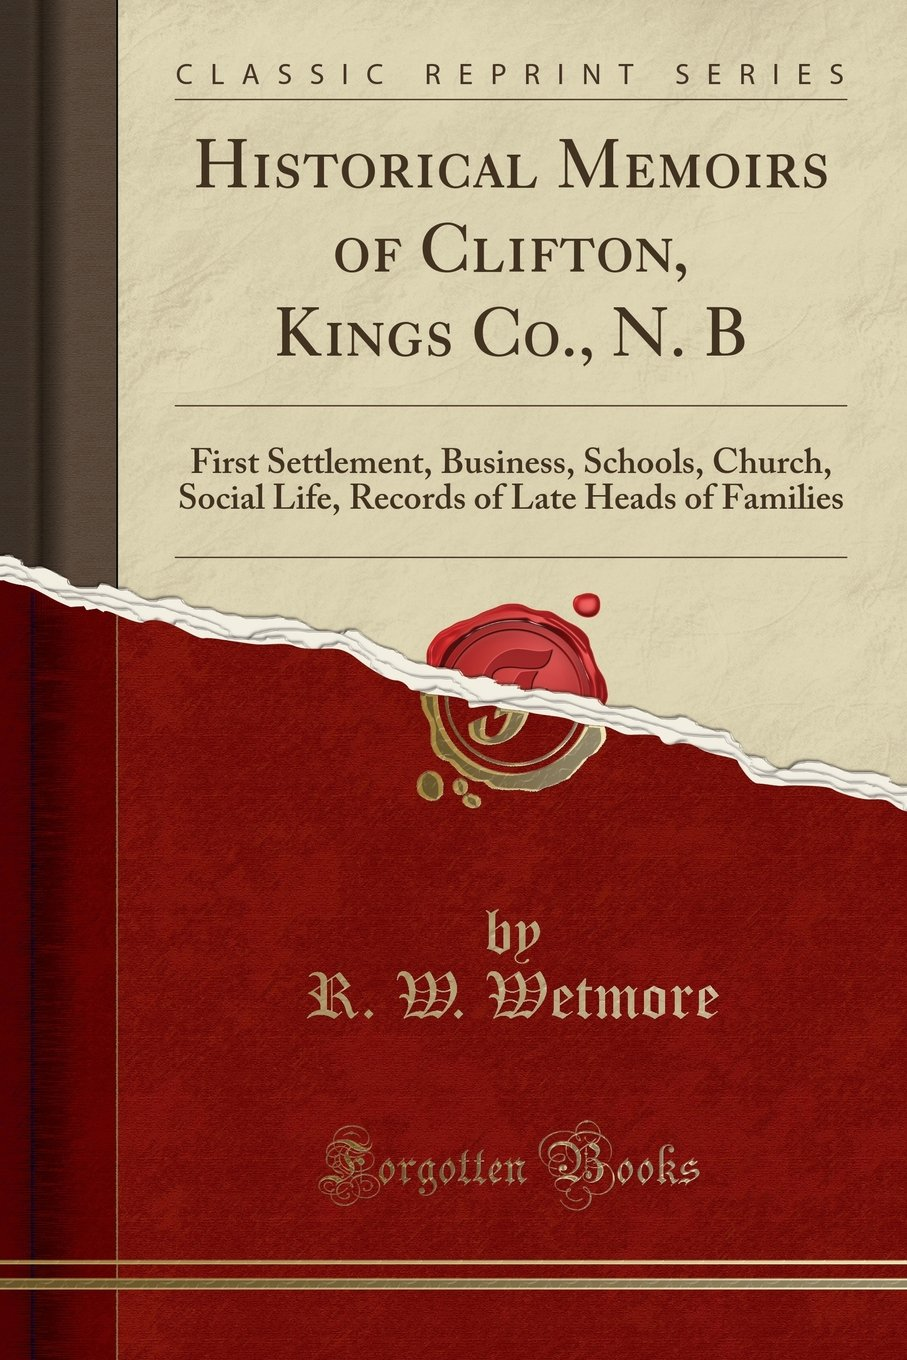 Historical Memoirs of Clifton, Kings Co., N. B: First Settlement, Business, Schools, Church, Social Life, Records of Late Heads of Families (Classic Reprint) ebook